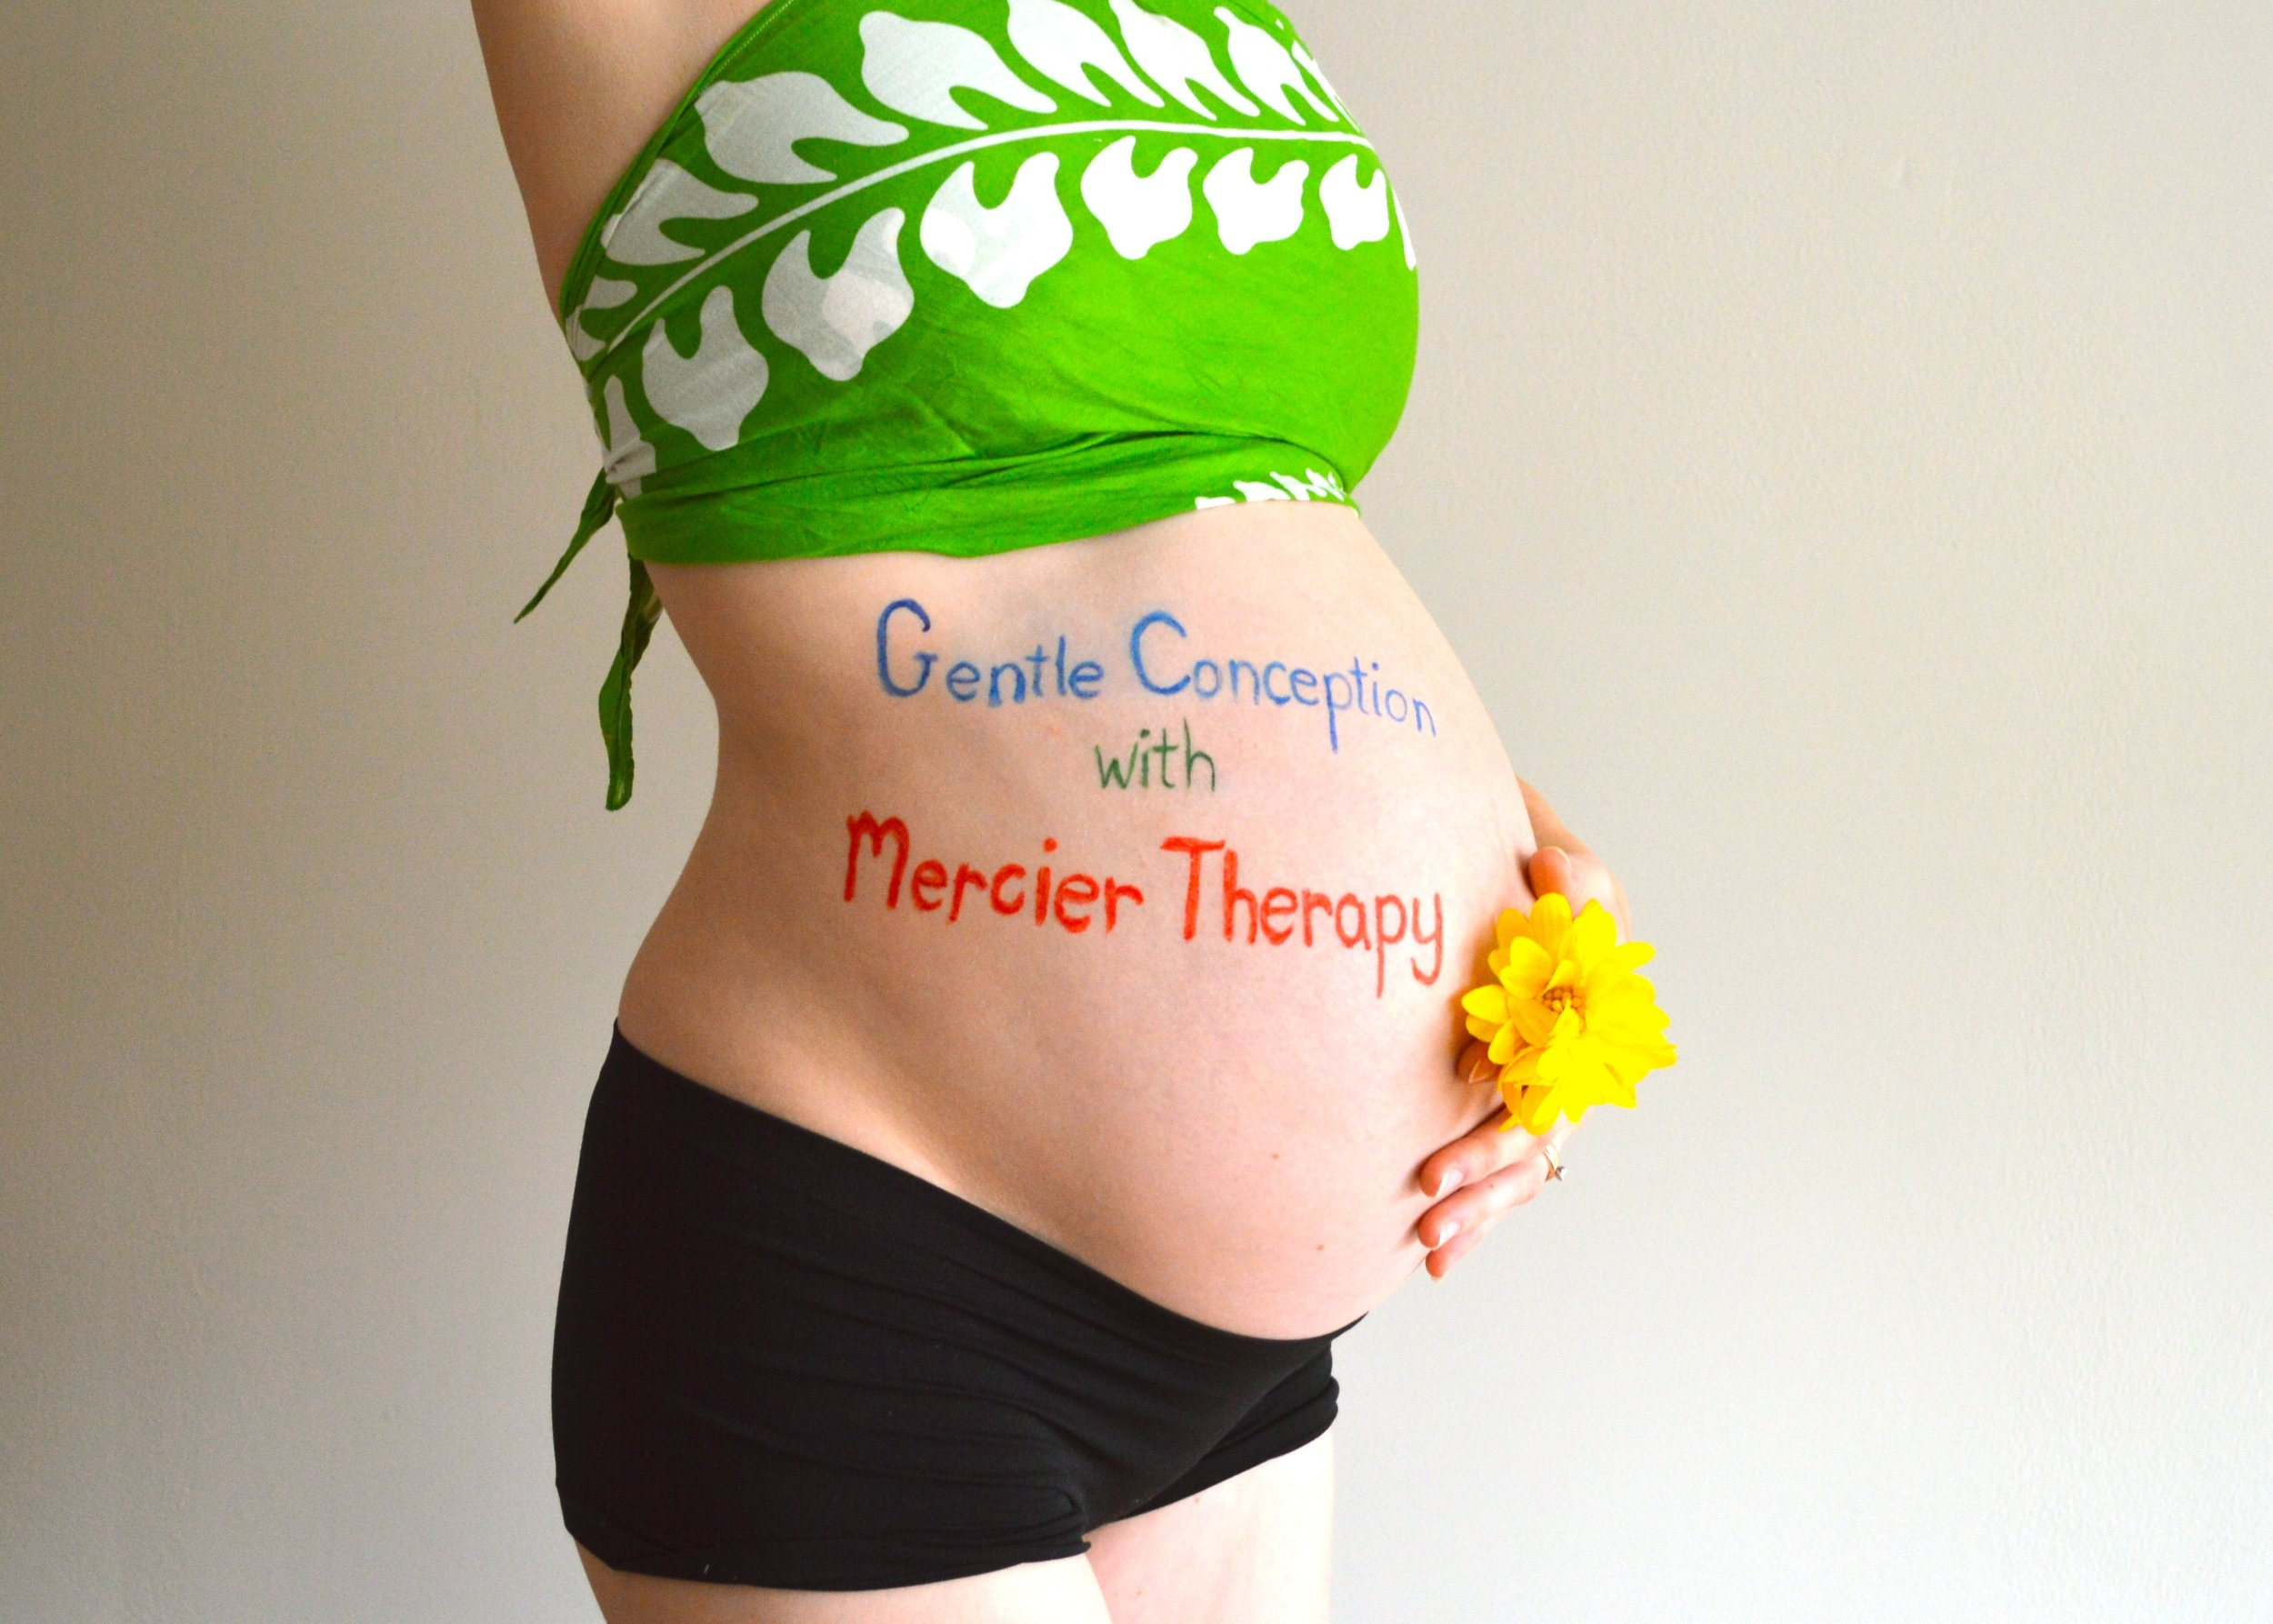 Gentle Conception with Mercier Therapy